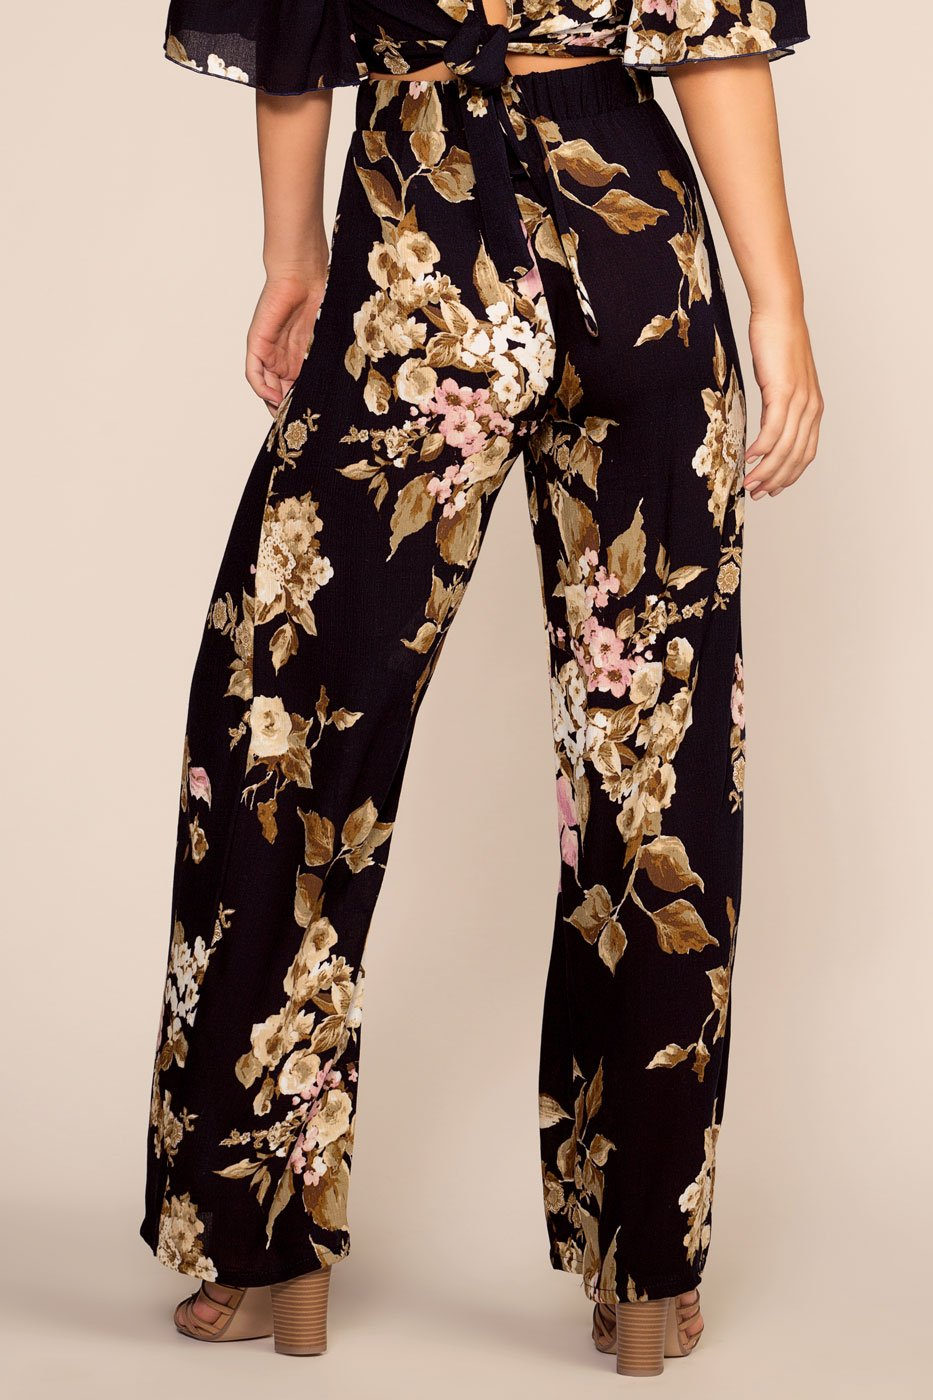 Pants - That's A Wrap Floral High Waisted Pants